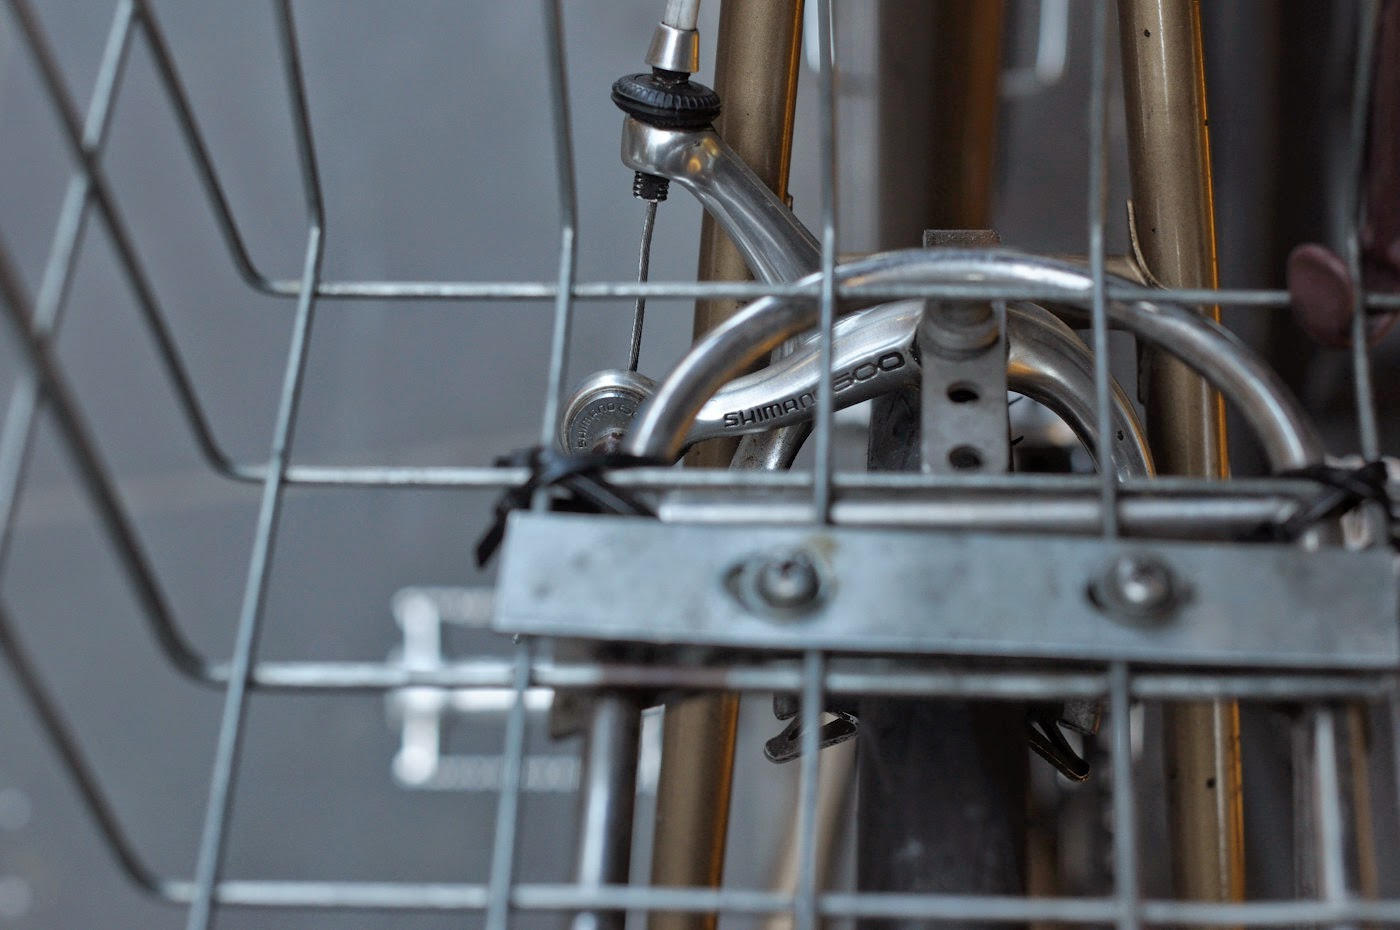 Bespoke, vintage, custom, Tim Macauley, The Biketorialist, The Light Monkey Collective, Melbourne, flinders lane, bicycle, road bike, Apollo, bike, setup, shimano, 600, groupset, side pull, brake, rear, pannier rack